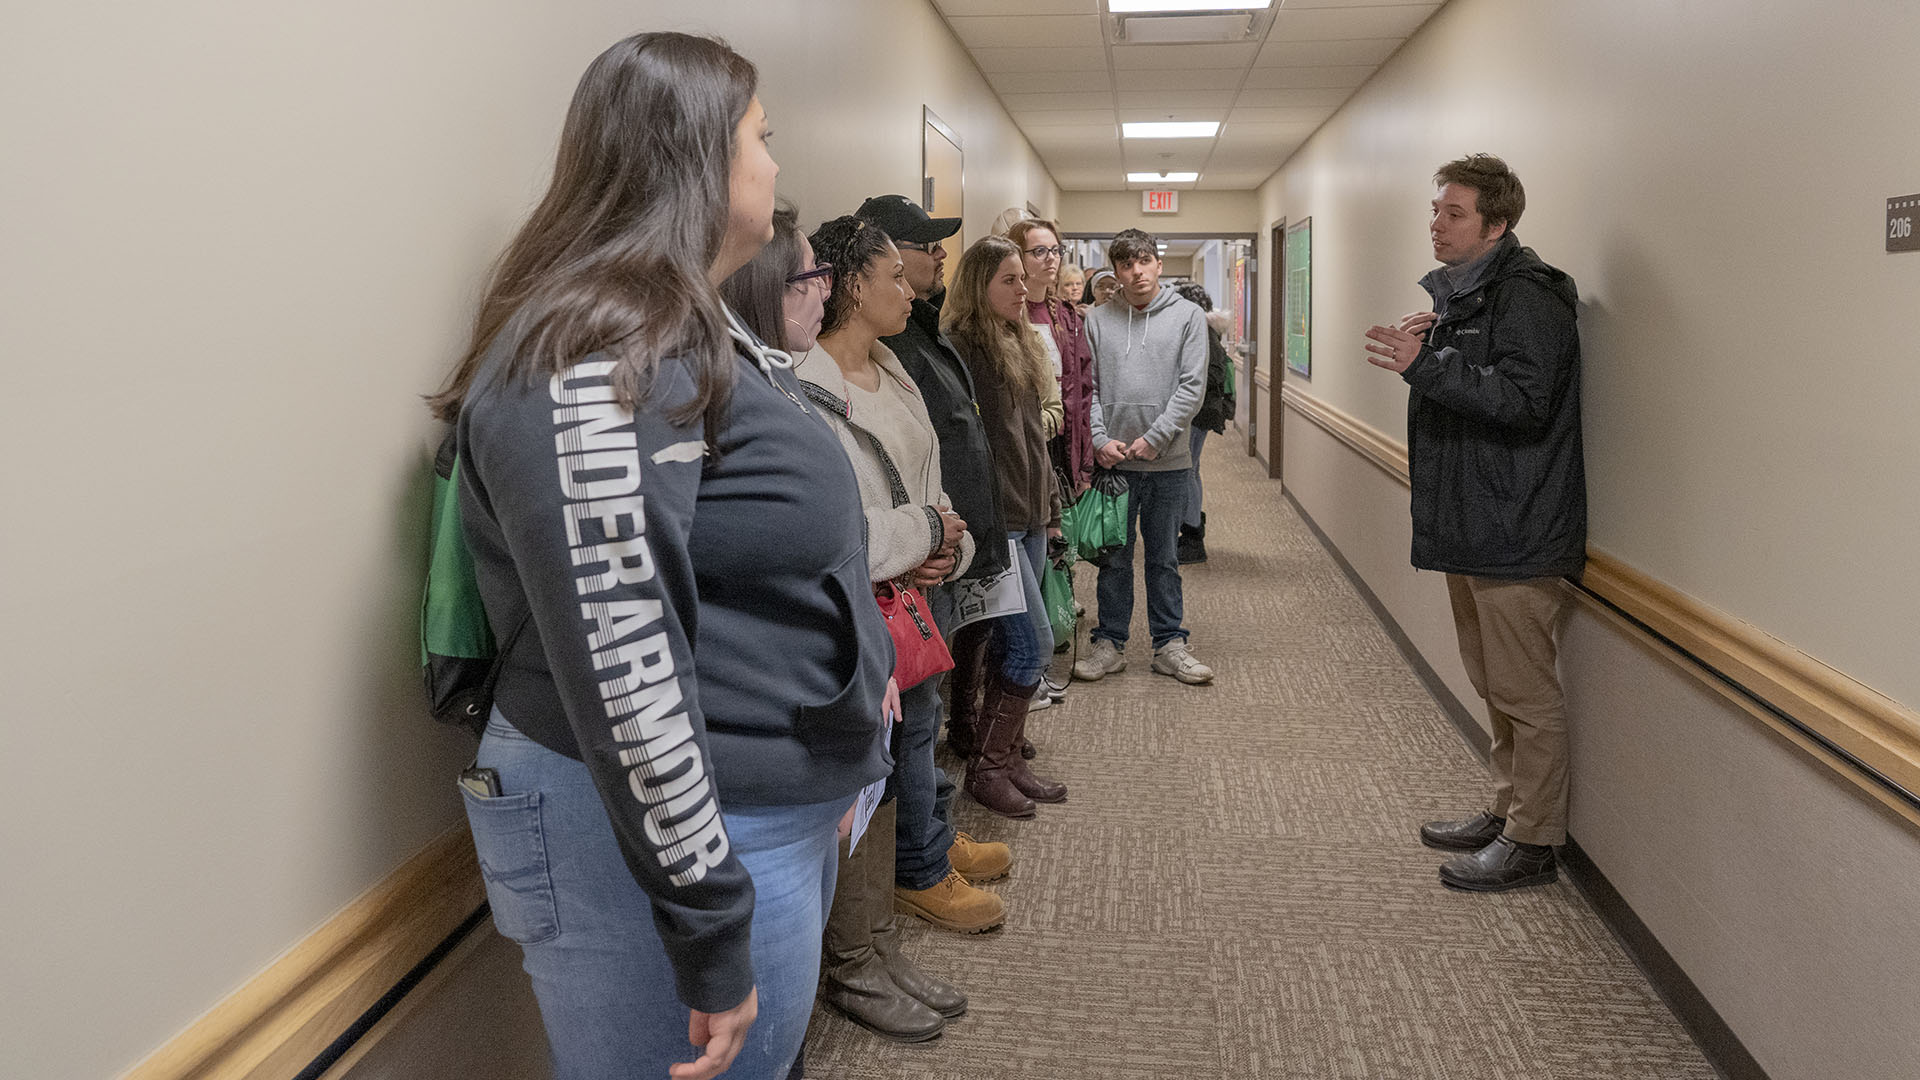 Students tour the residence halls